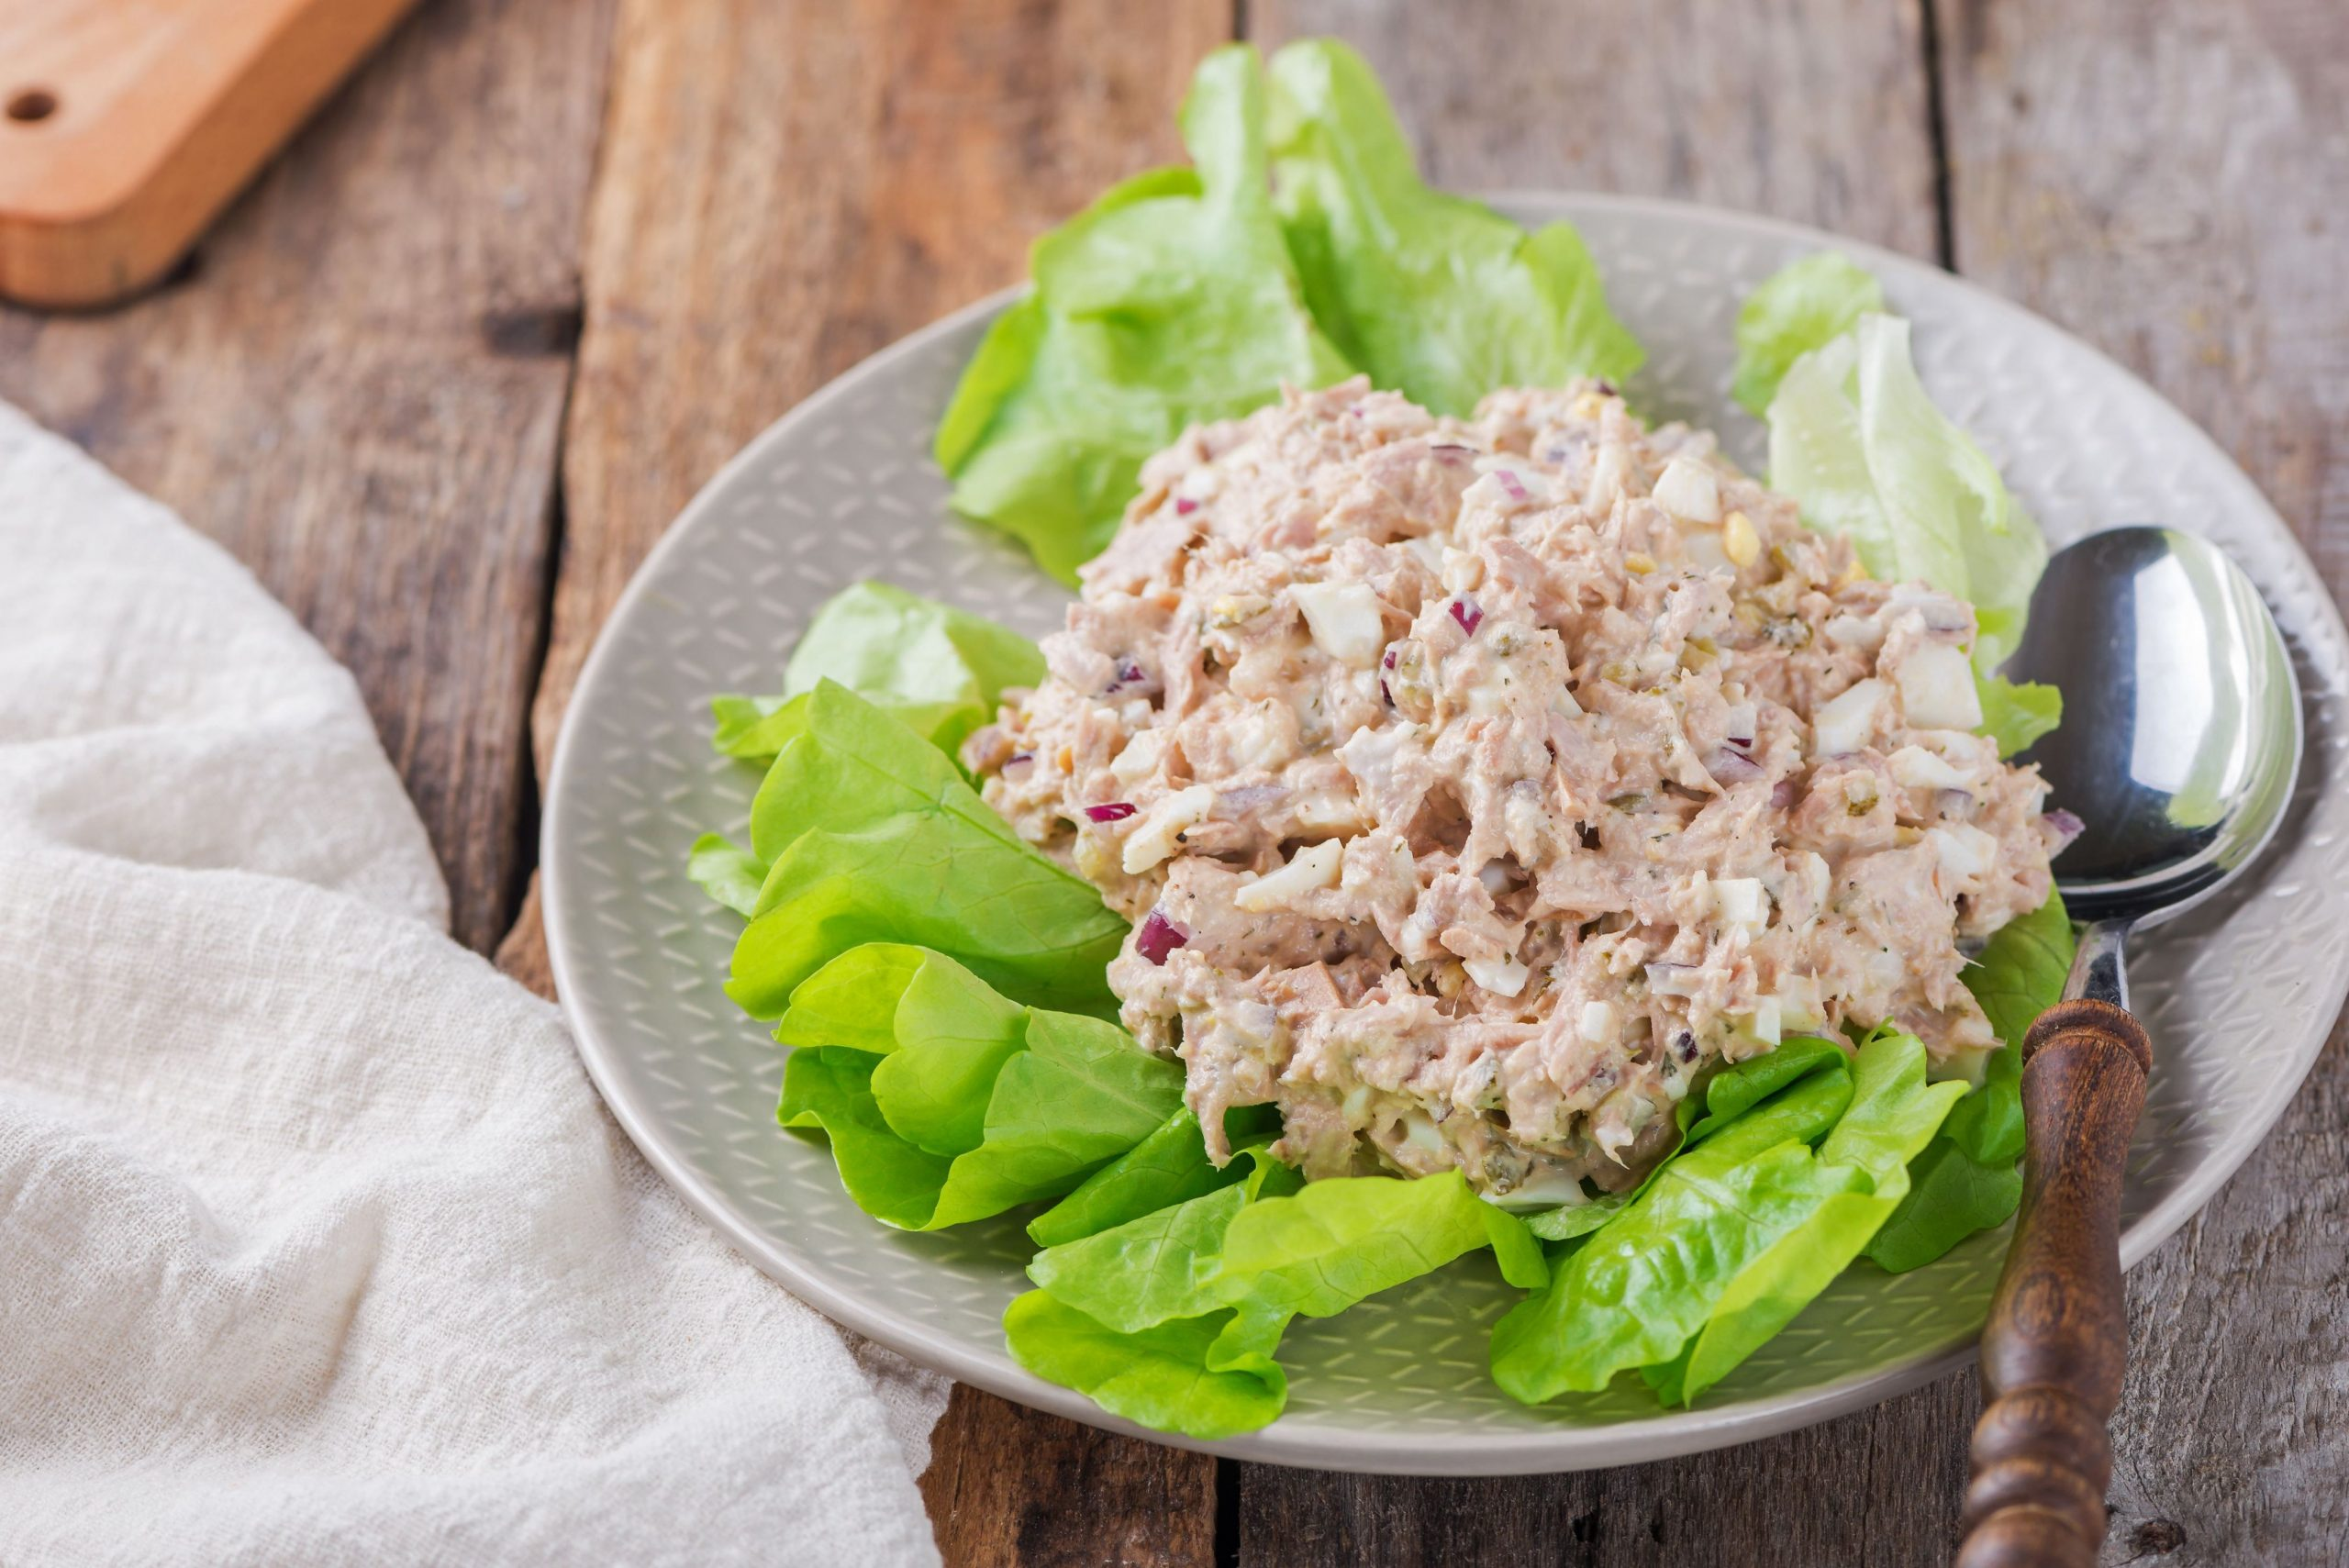 Tuna Salad With Chopped Eggs and Dill